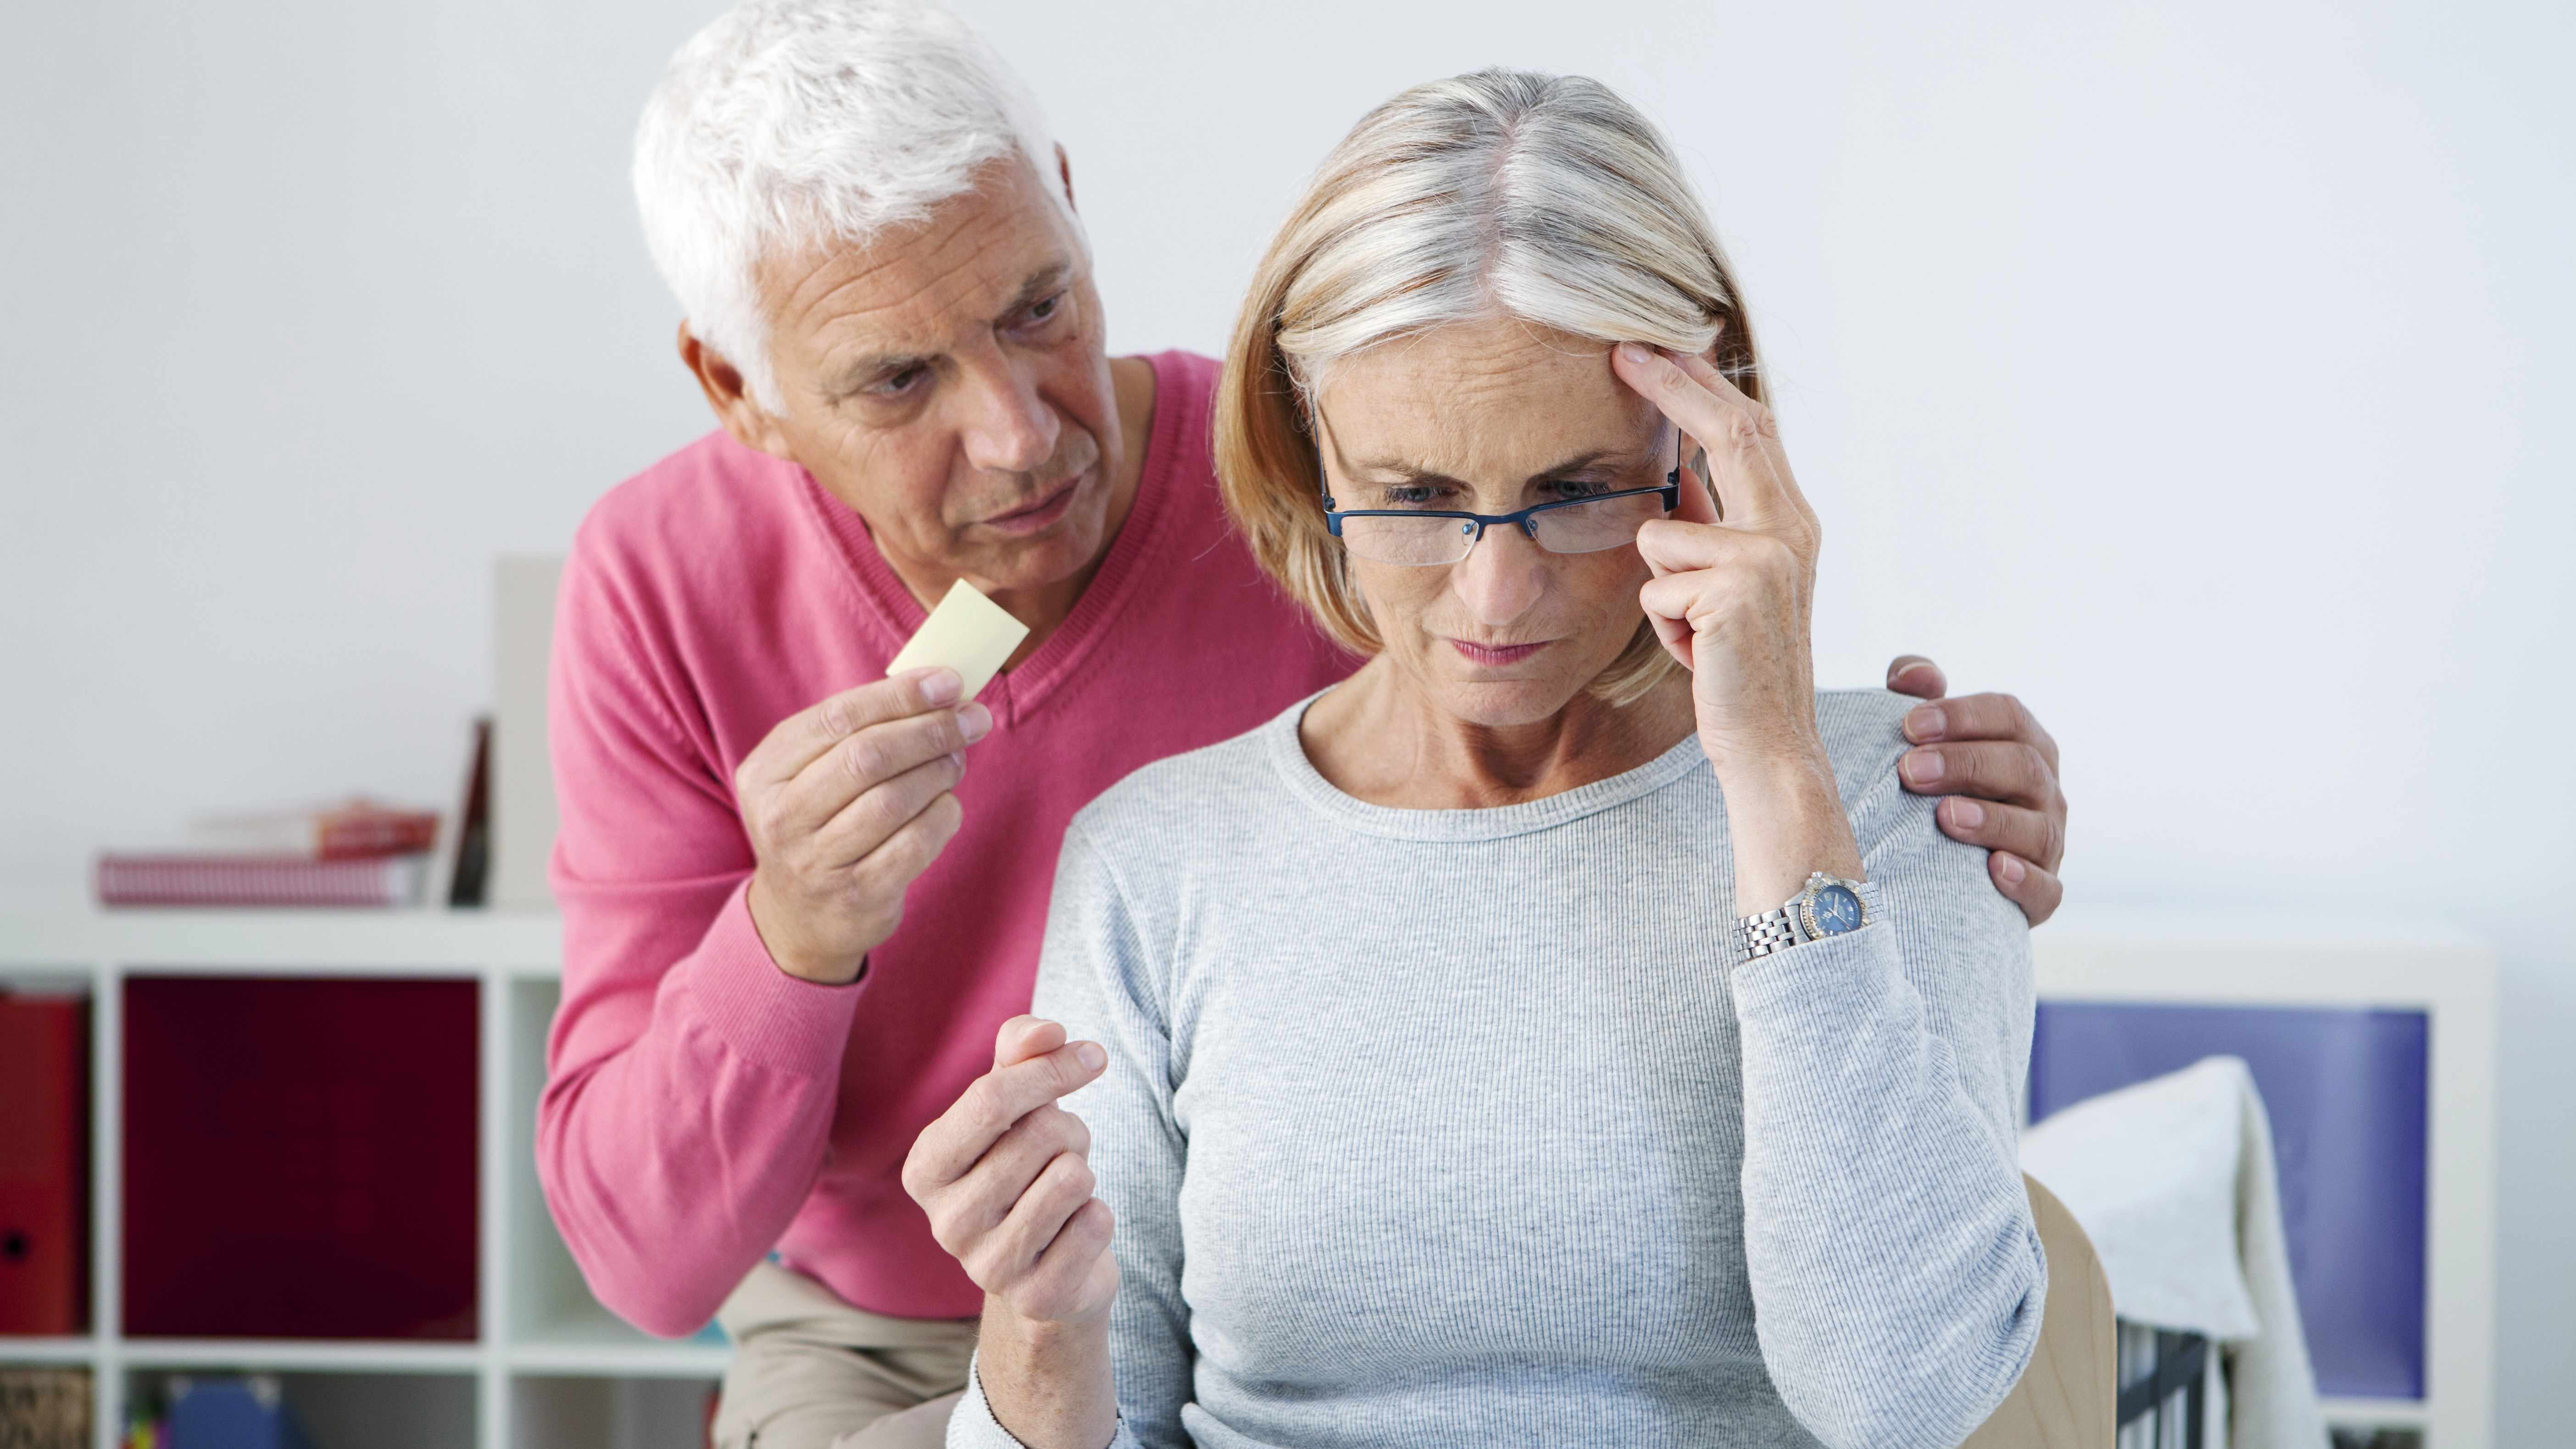 an older man showing a piece of paper to an older woman who is touching her head and trying to remember something